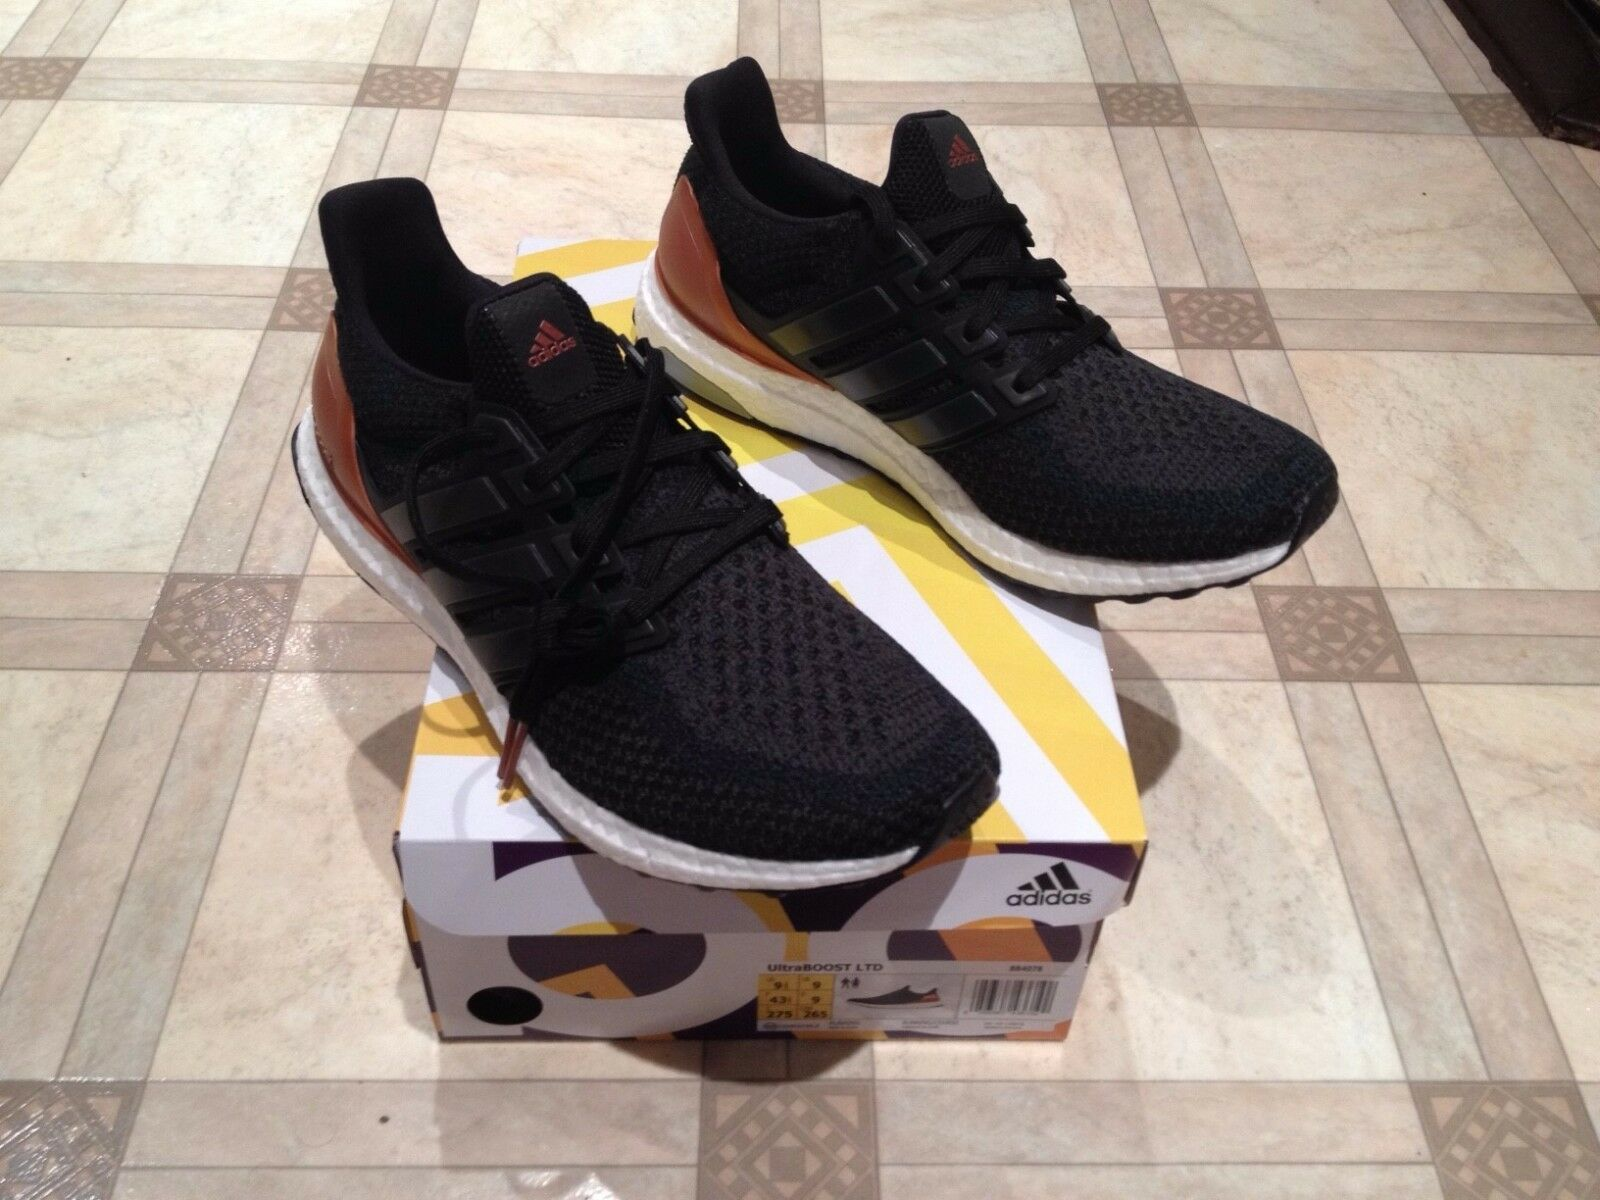 ADIDAS ULTRABOOST ULTRA BOOST BRONZE BRONZE BRONZE OLYMPIC PACK ALL SIZES 6 7 8 9 10 11 12 NEW 0ded47